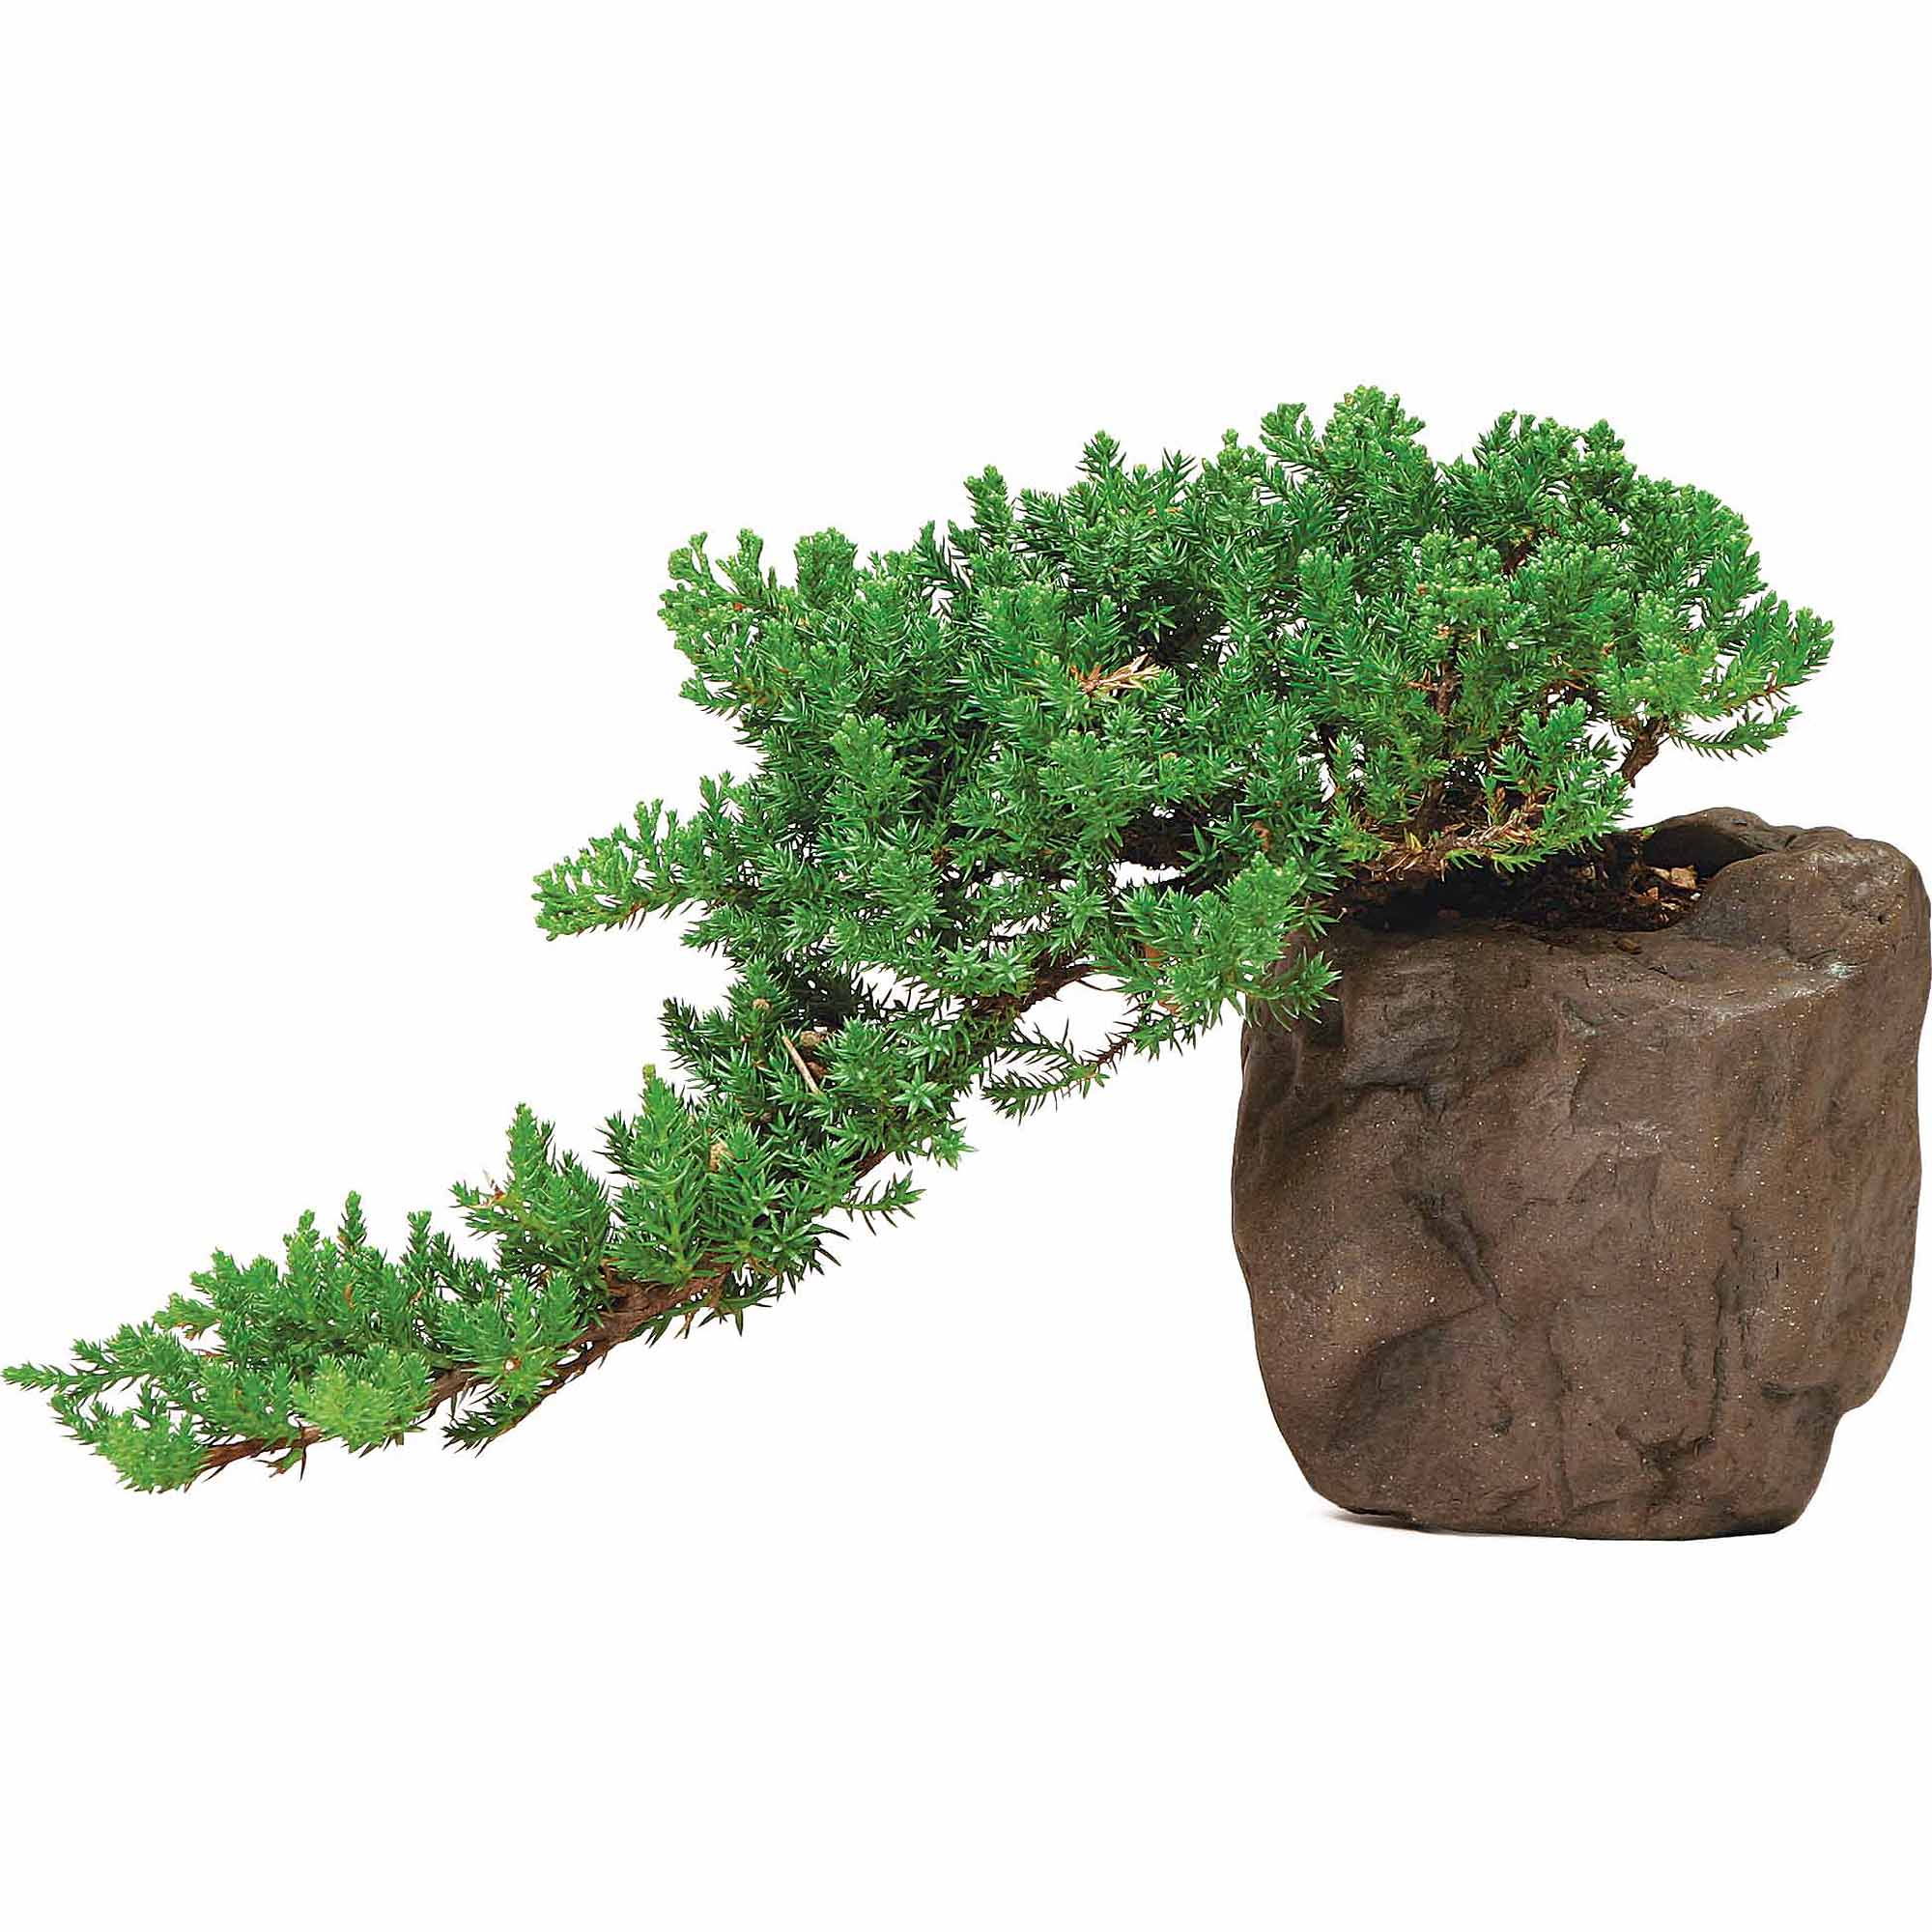 Green Mound Juniper Bonsai Tree In Rock Pot by Brussel's Bonsai